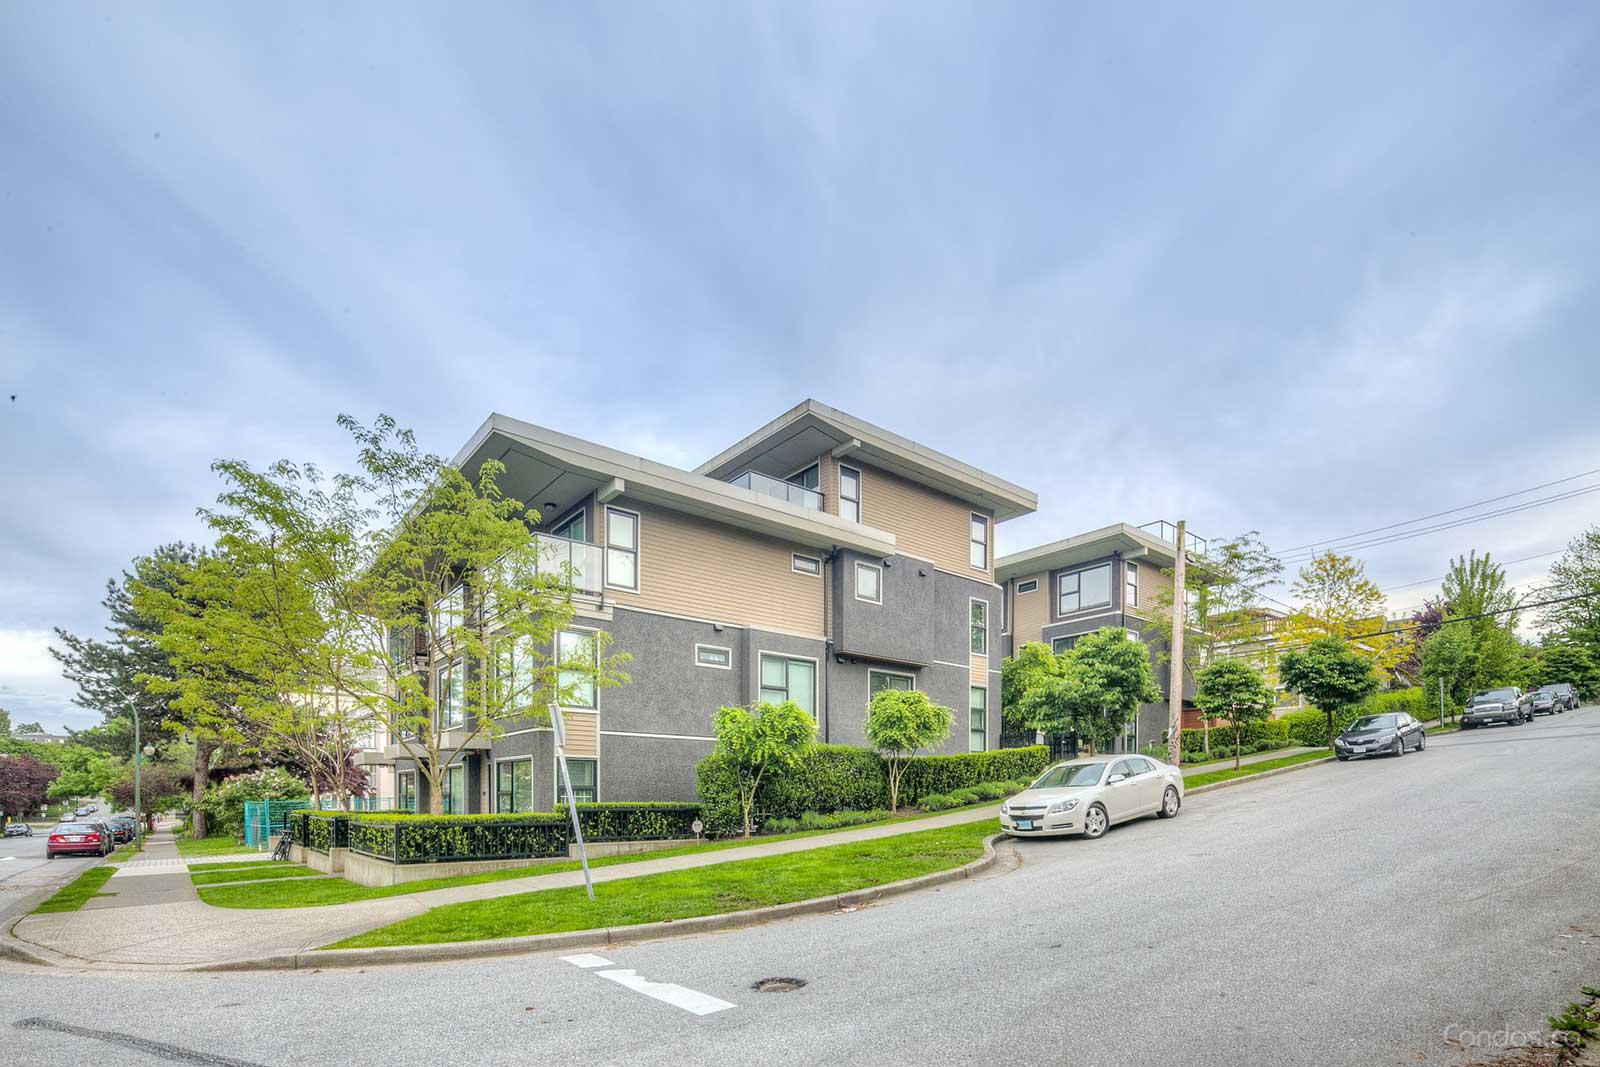 7 & W Townhomes at 1002 E 7th Ave, Vancouver 0